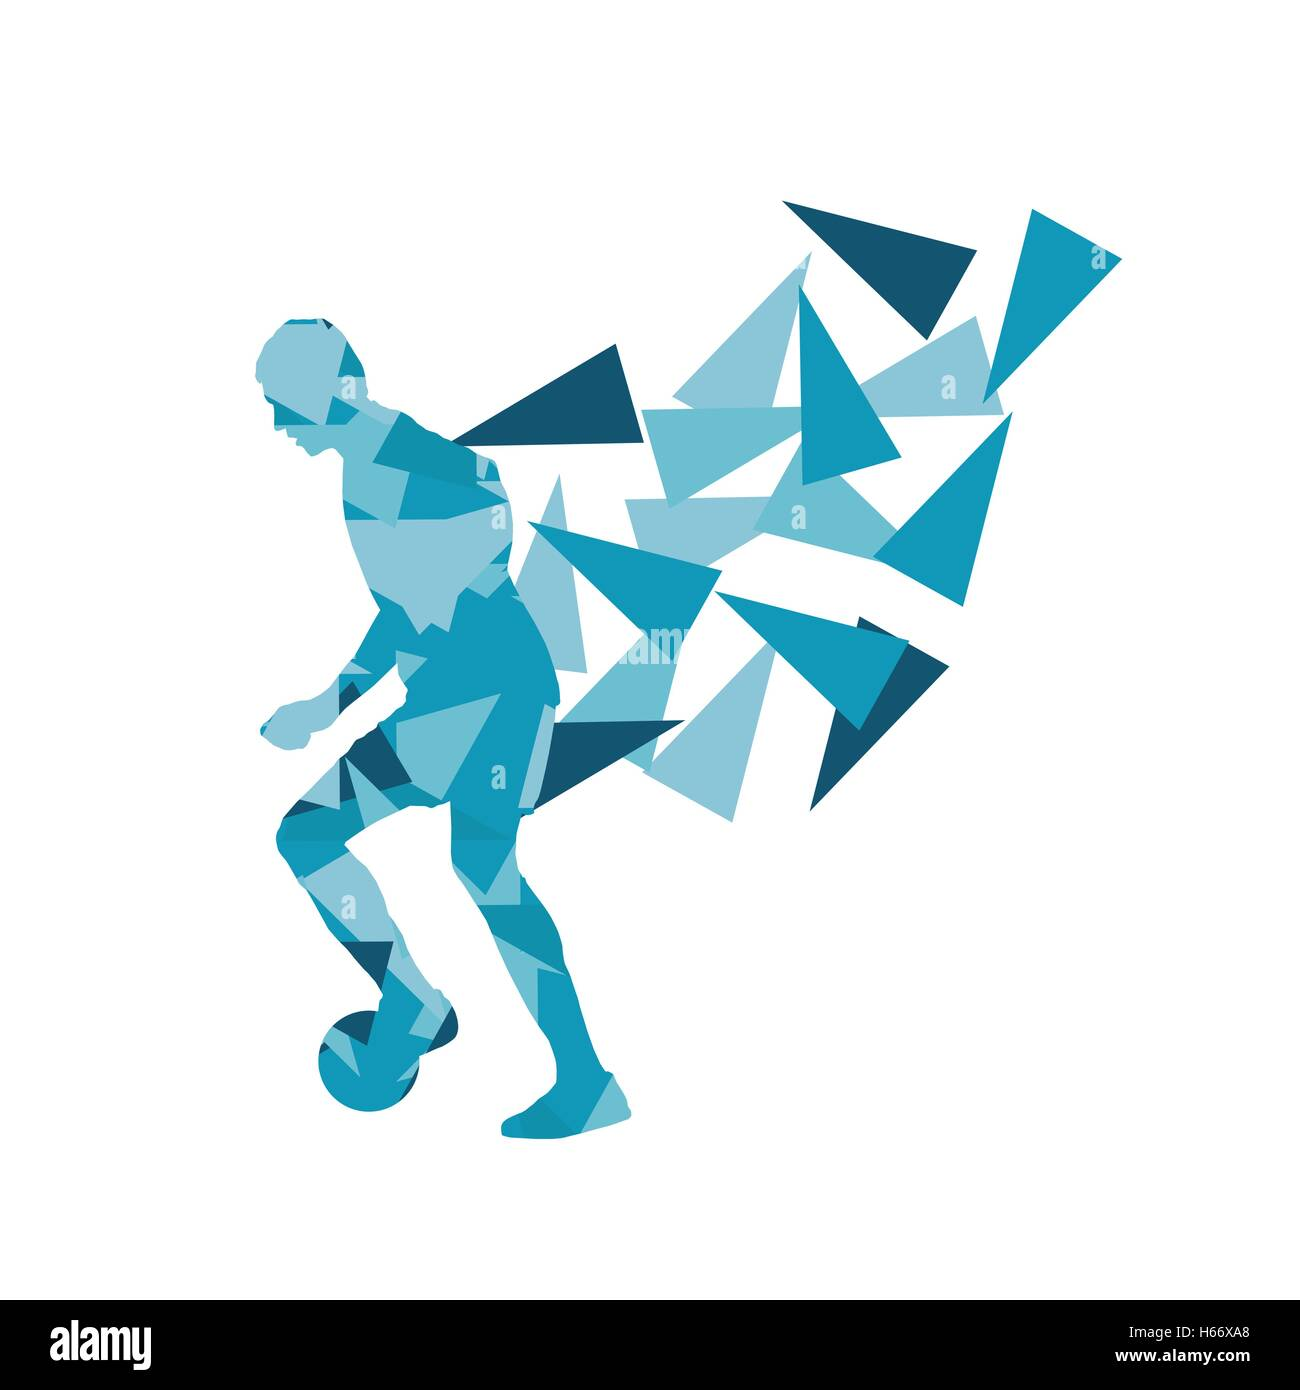 Soccer Football Player Vector Background Abstract Illustration Stock